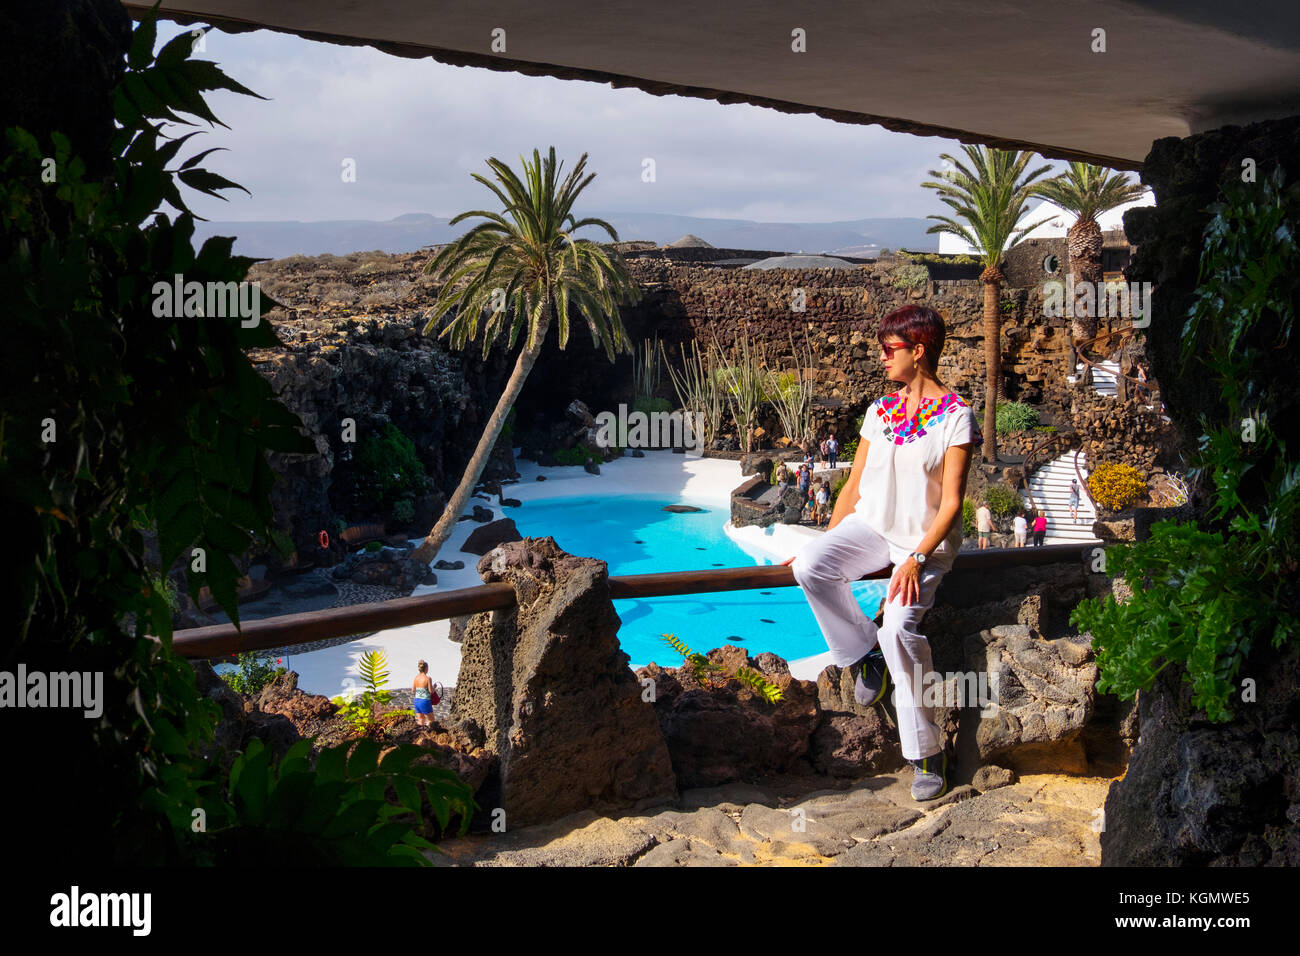 Canarian garden stock photos canarian garden stock for Garden centre pool in wharfedale